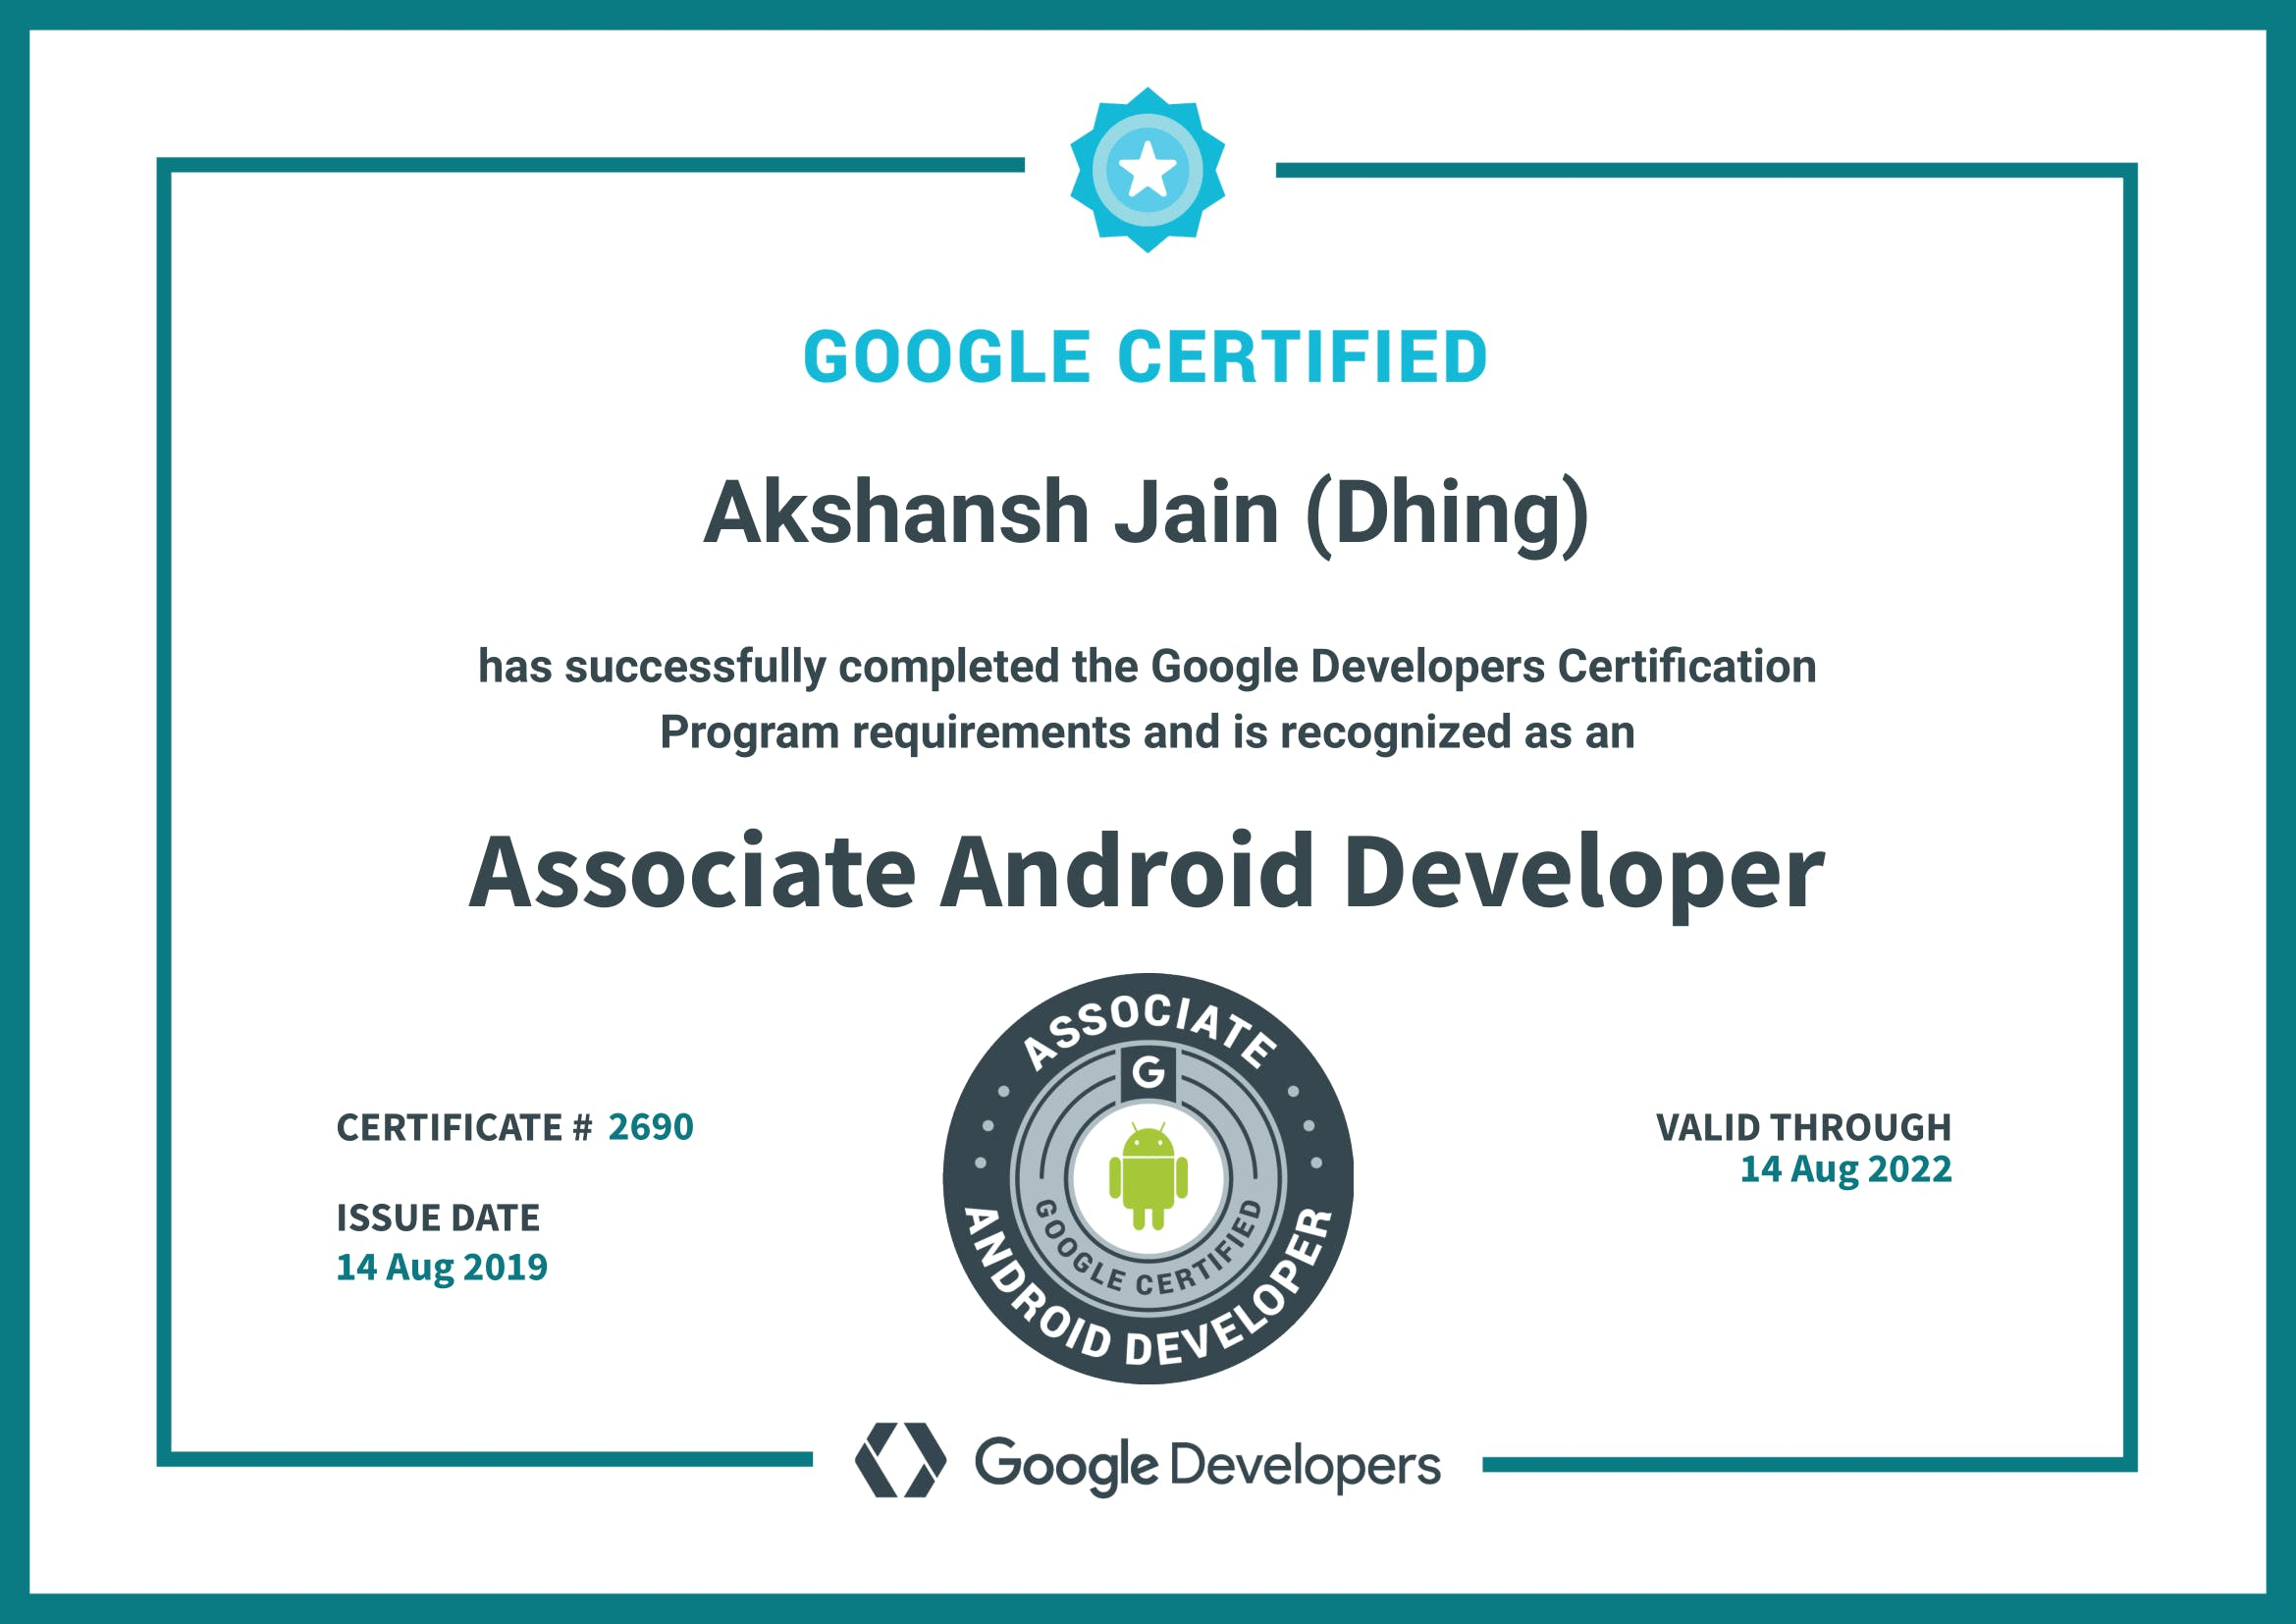 The Associate Android Developer certification.